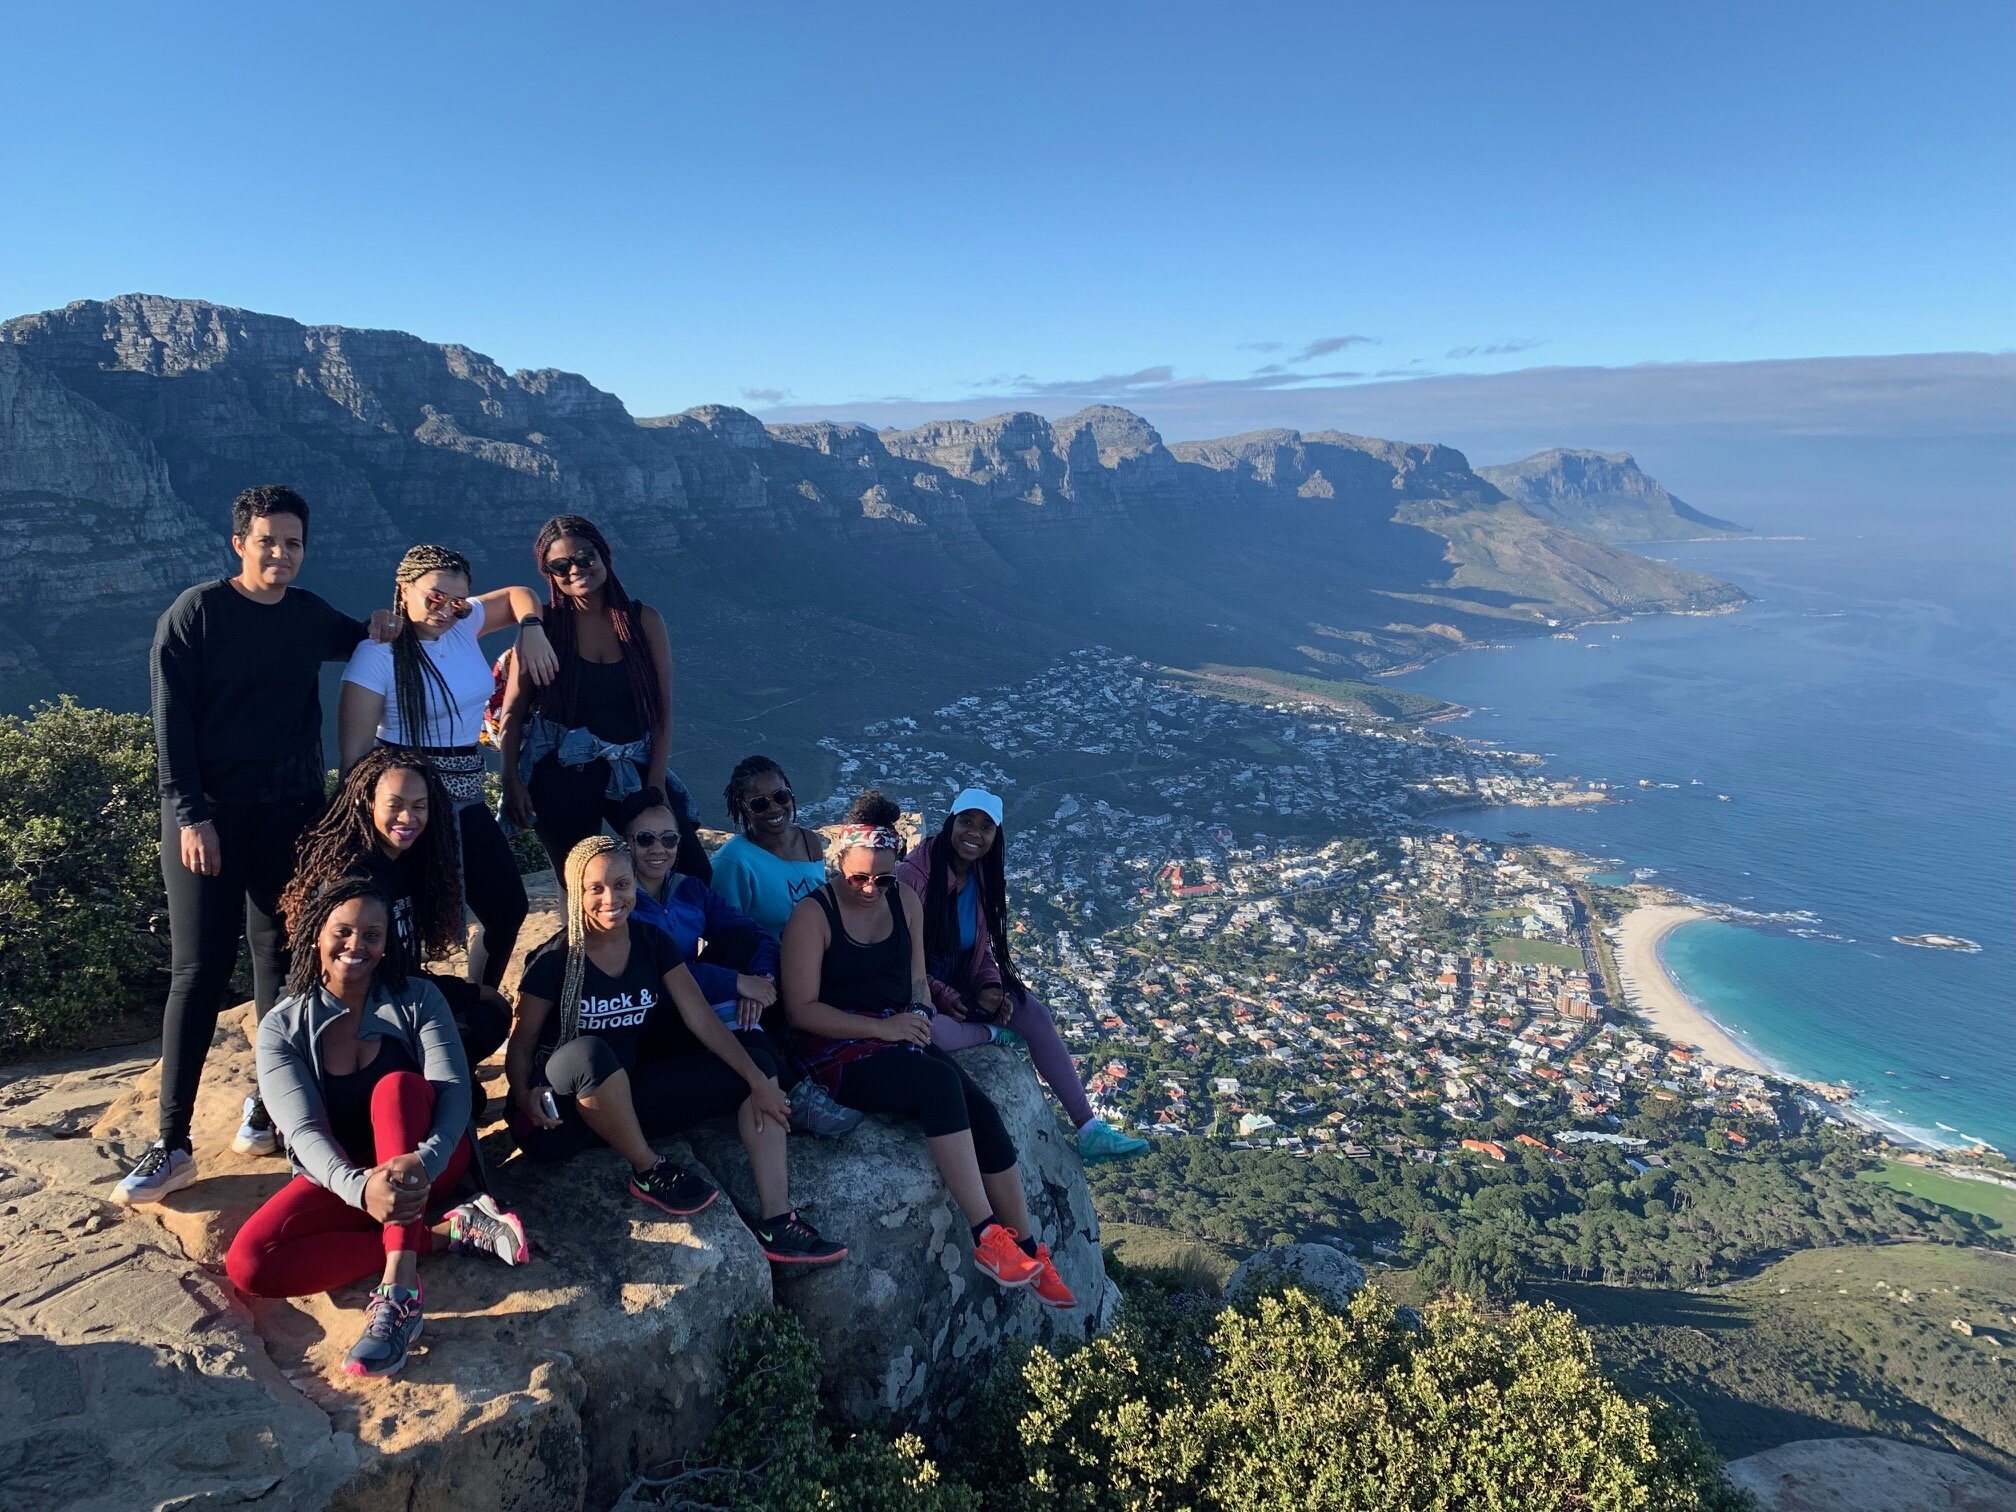 At the top of Lion's Head! We made this climb together on my birthday as well! 10/3/19